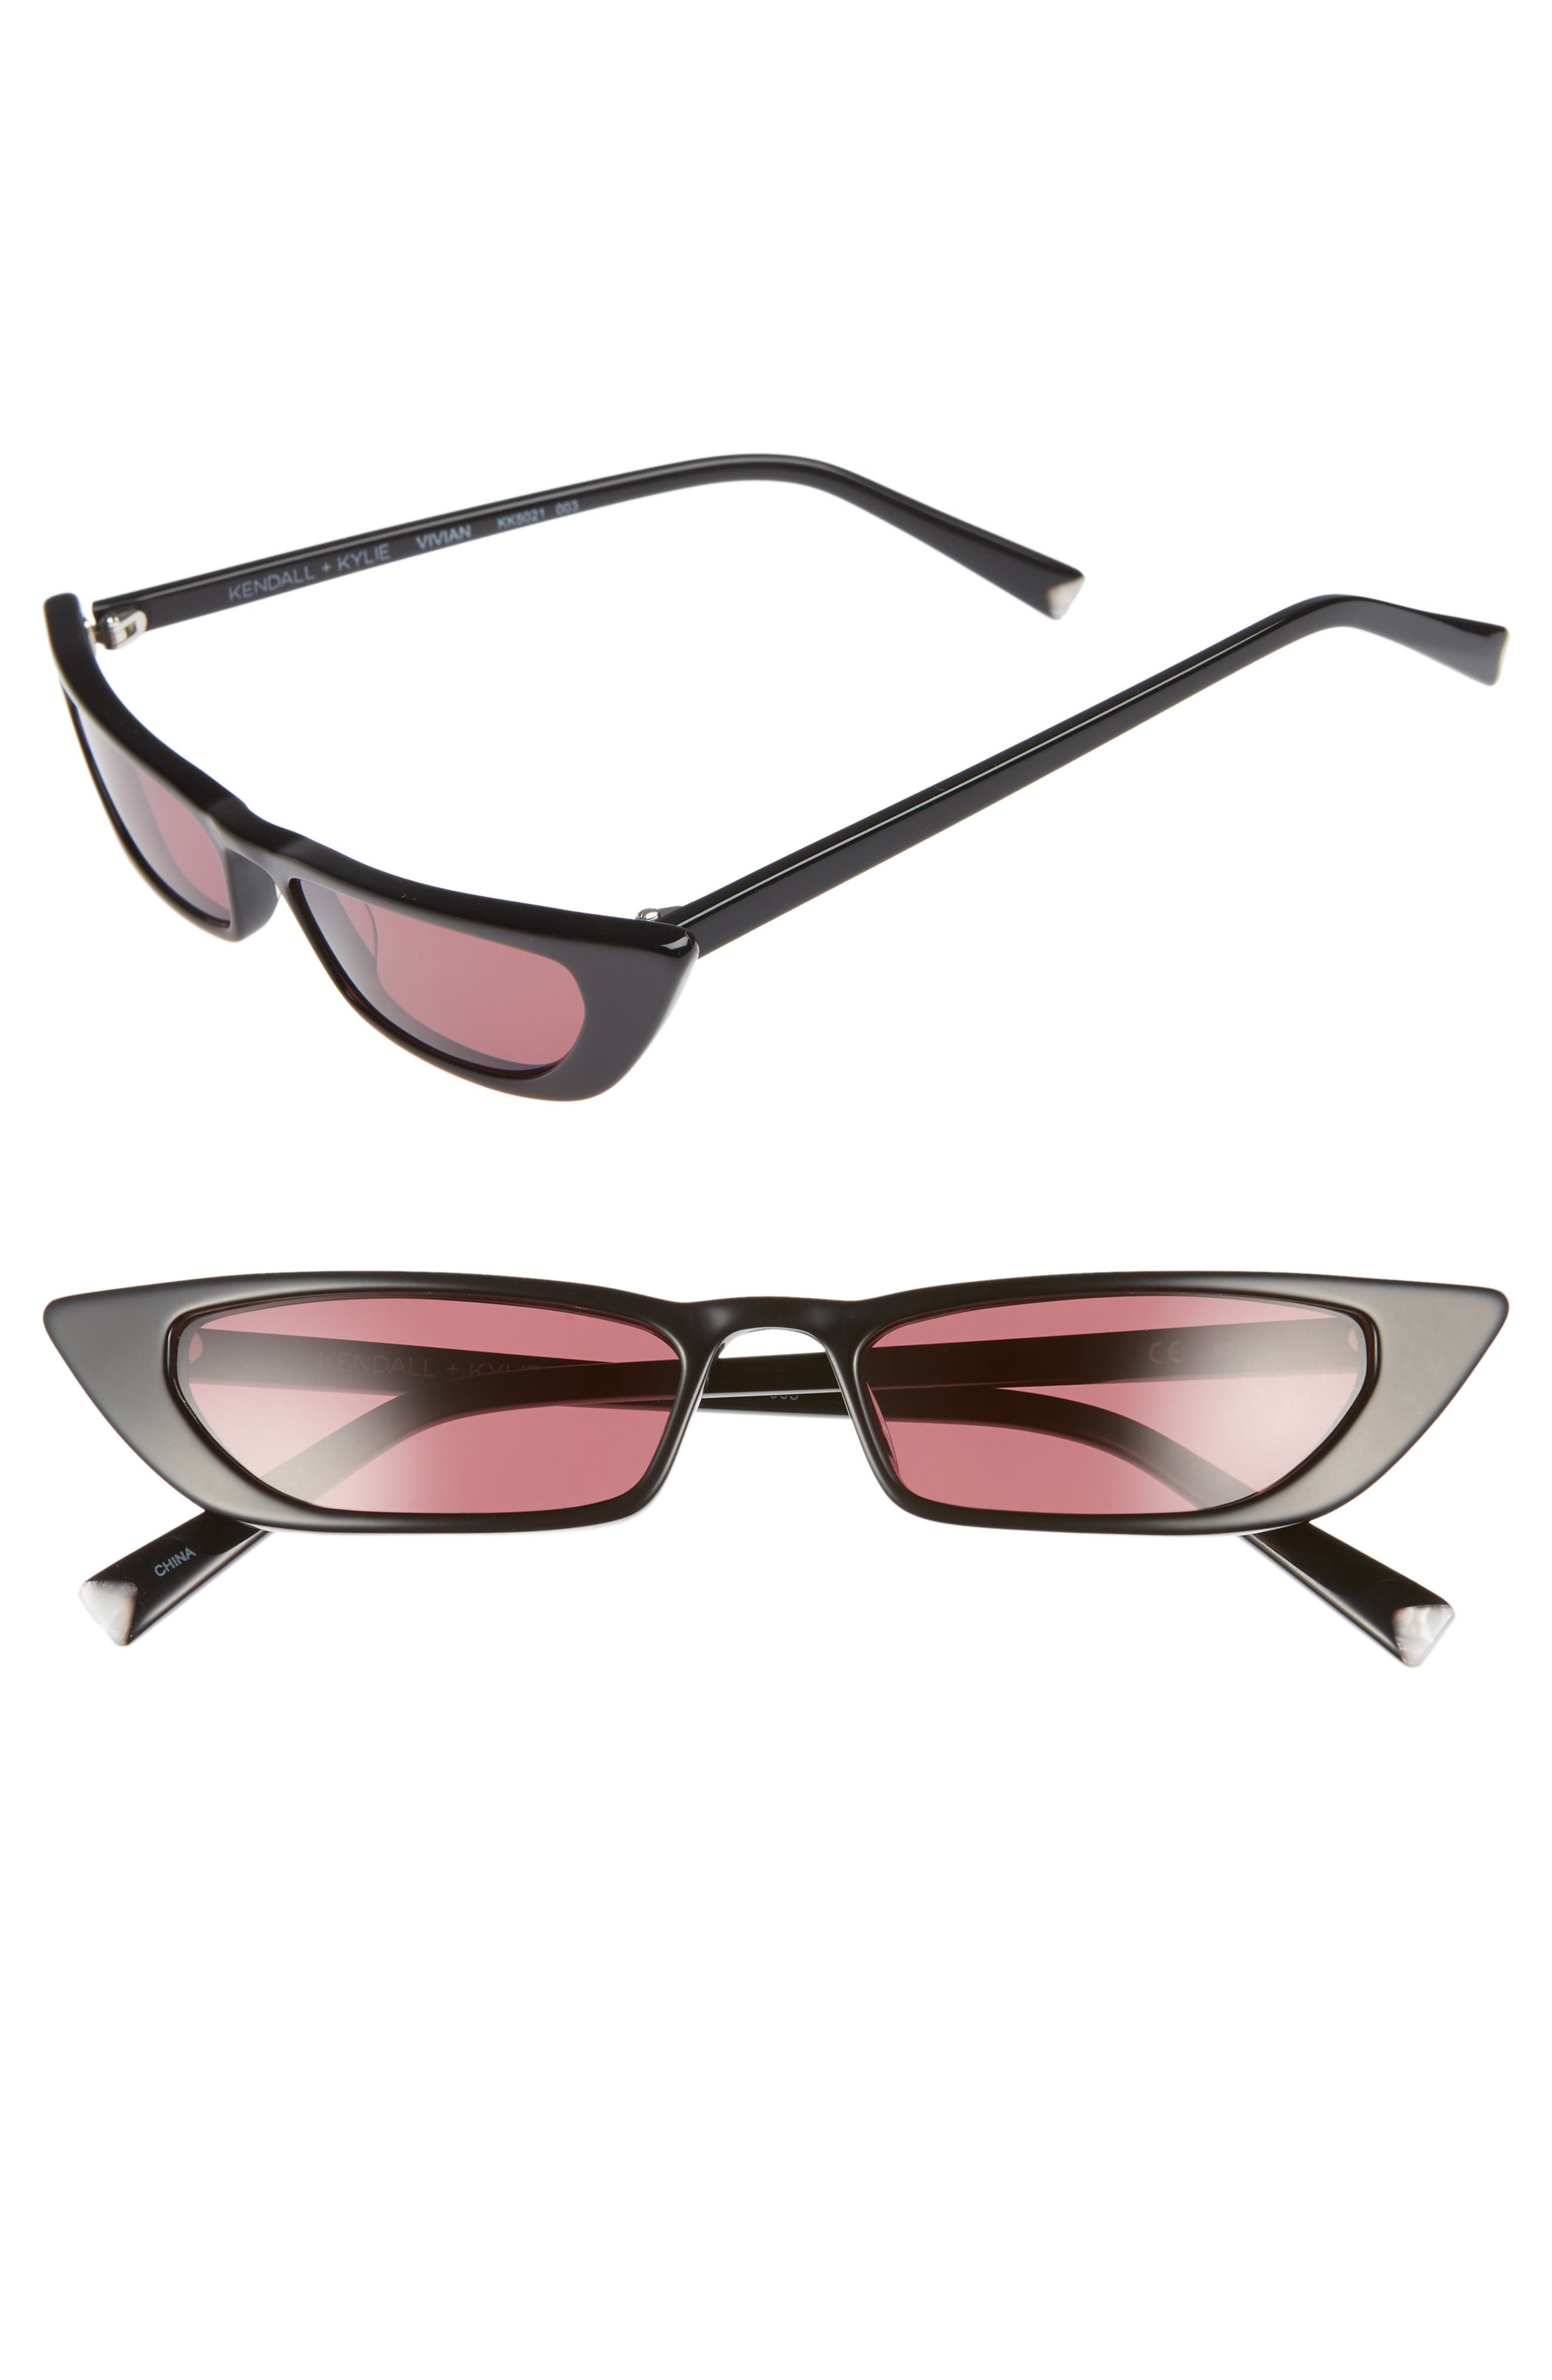 KENDALL AND KYLIE Vivian 51Mm Extreme Cat Eye Sunglasses - Black